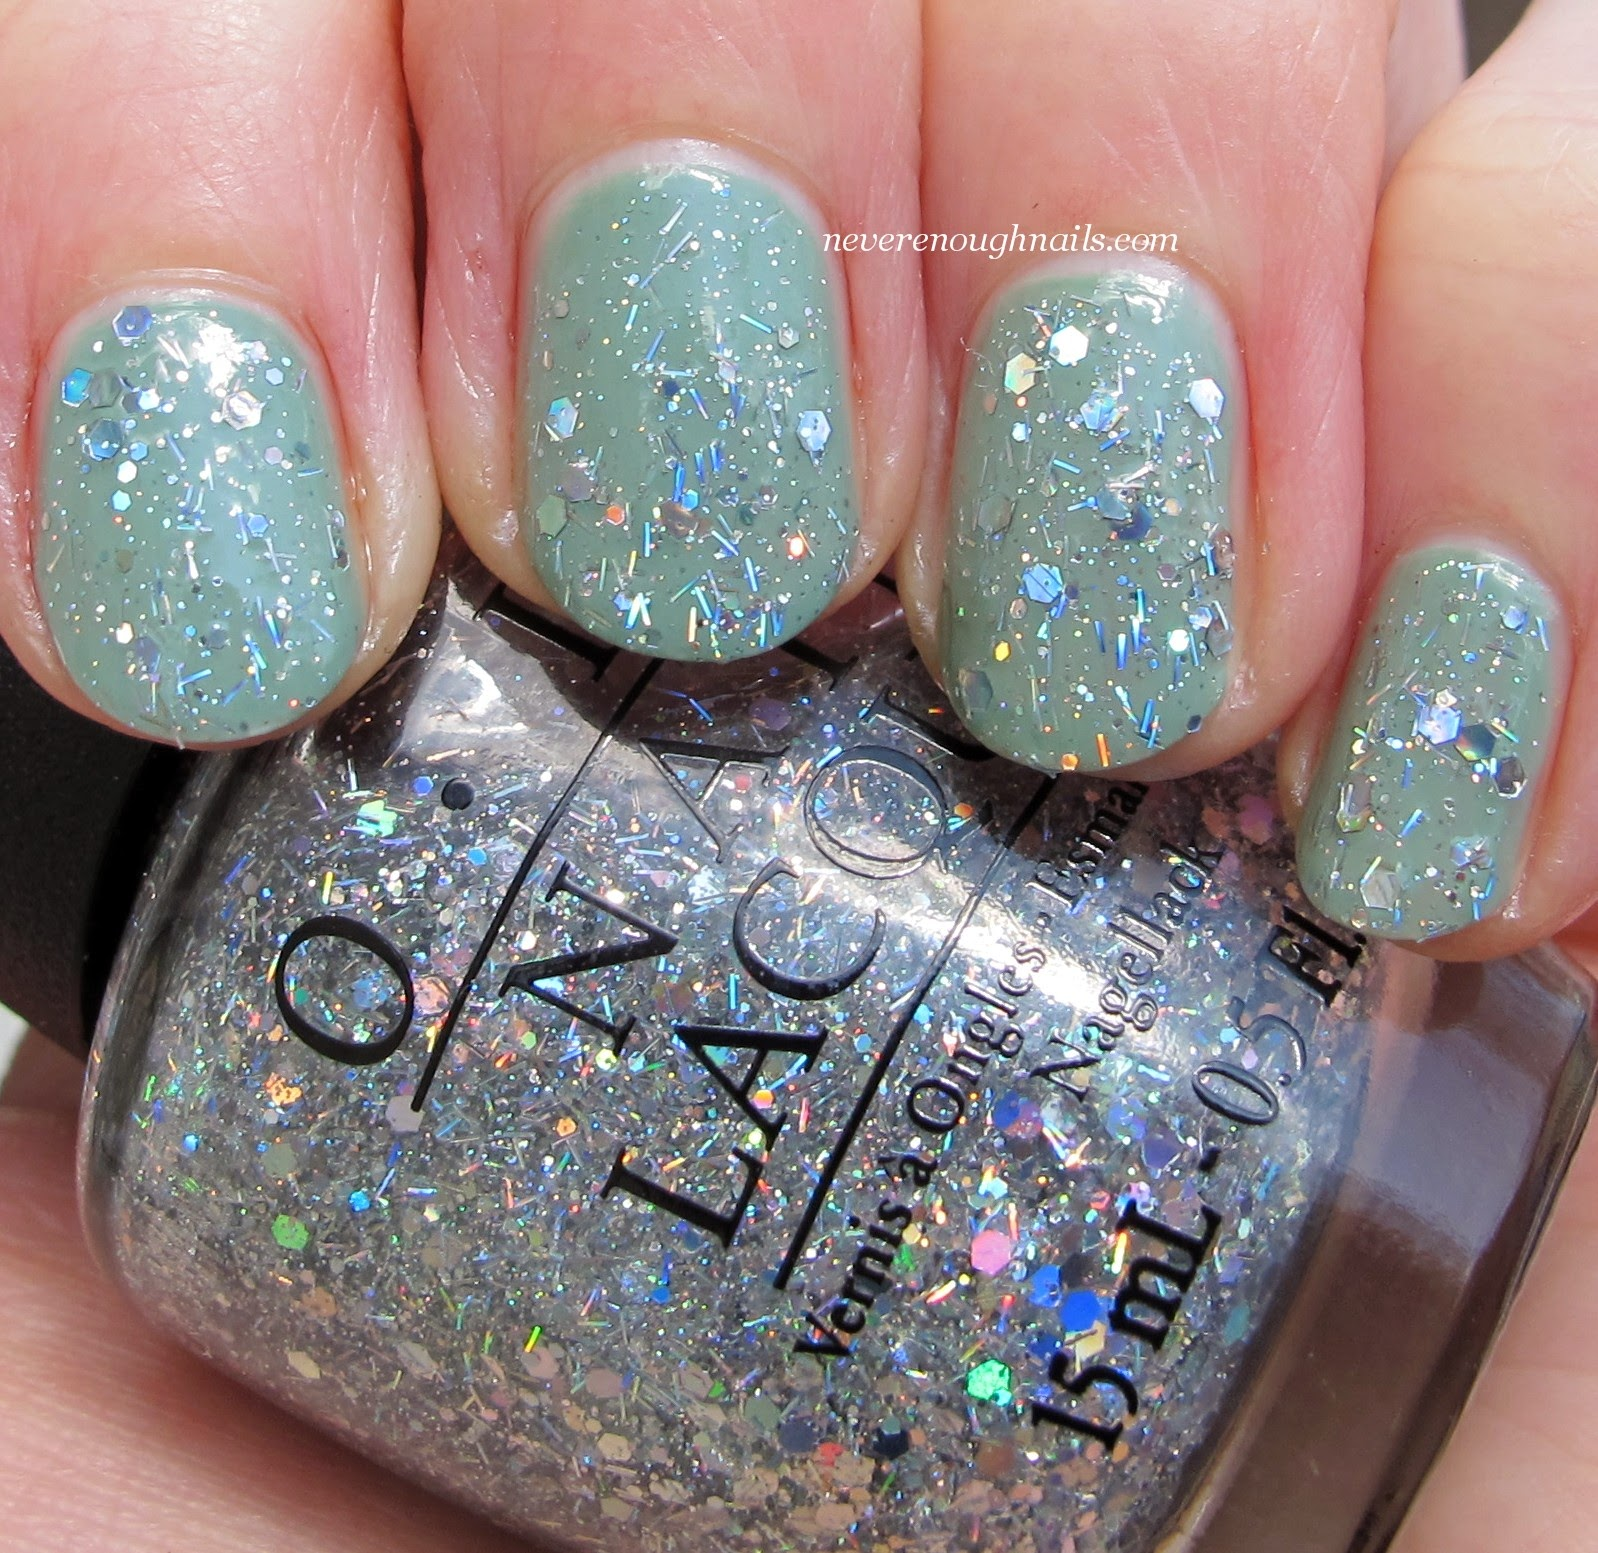 Never Enough Nails: OPI Spotlight on Glitter Swatches, Part 2!